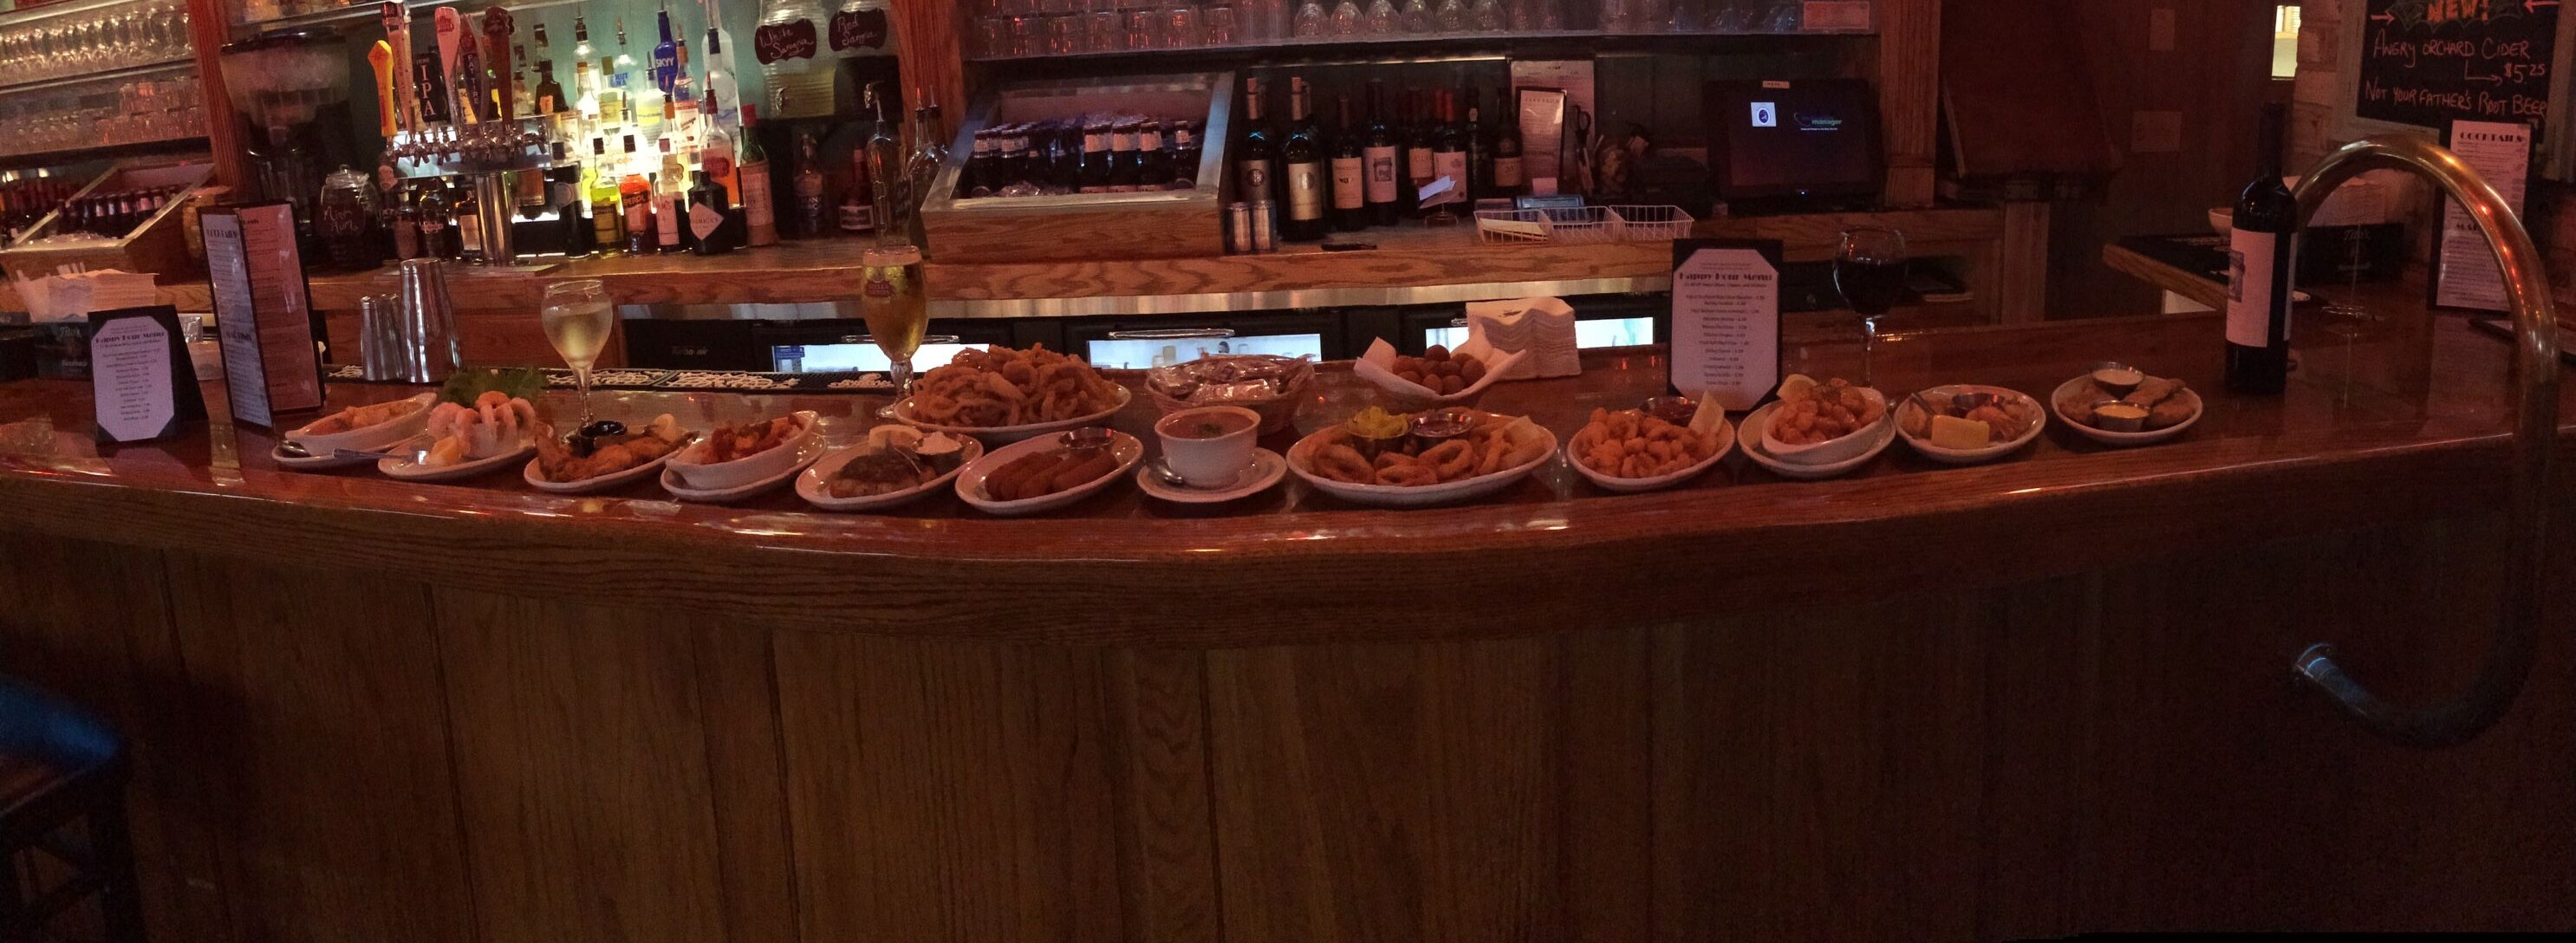 Our Happy Hour offerings at the Bar